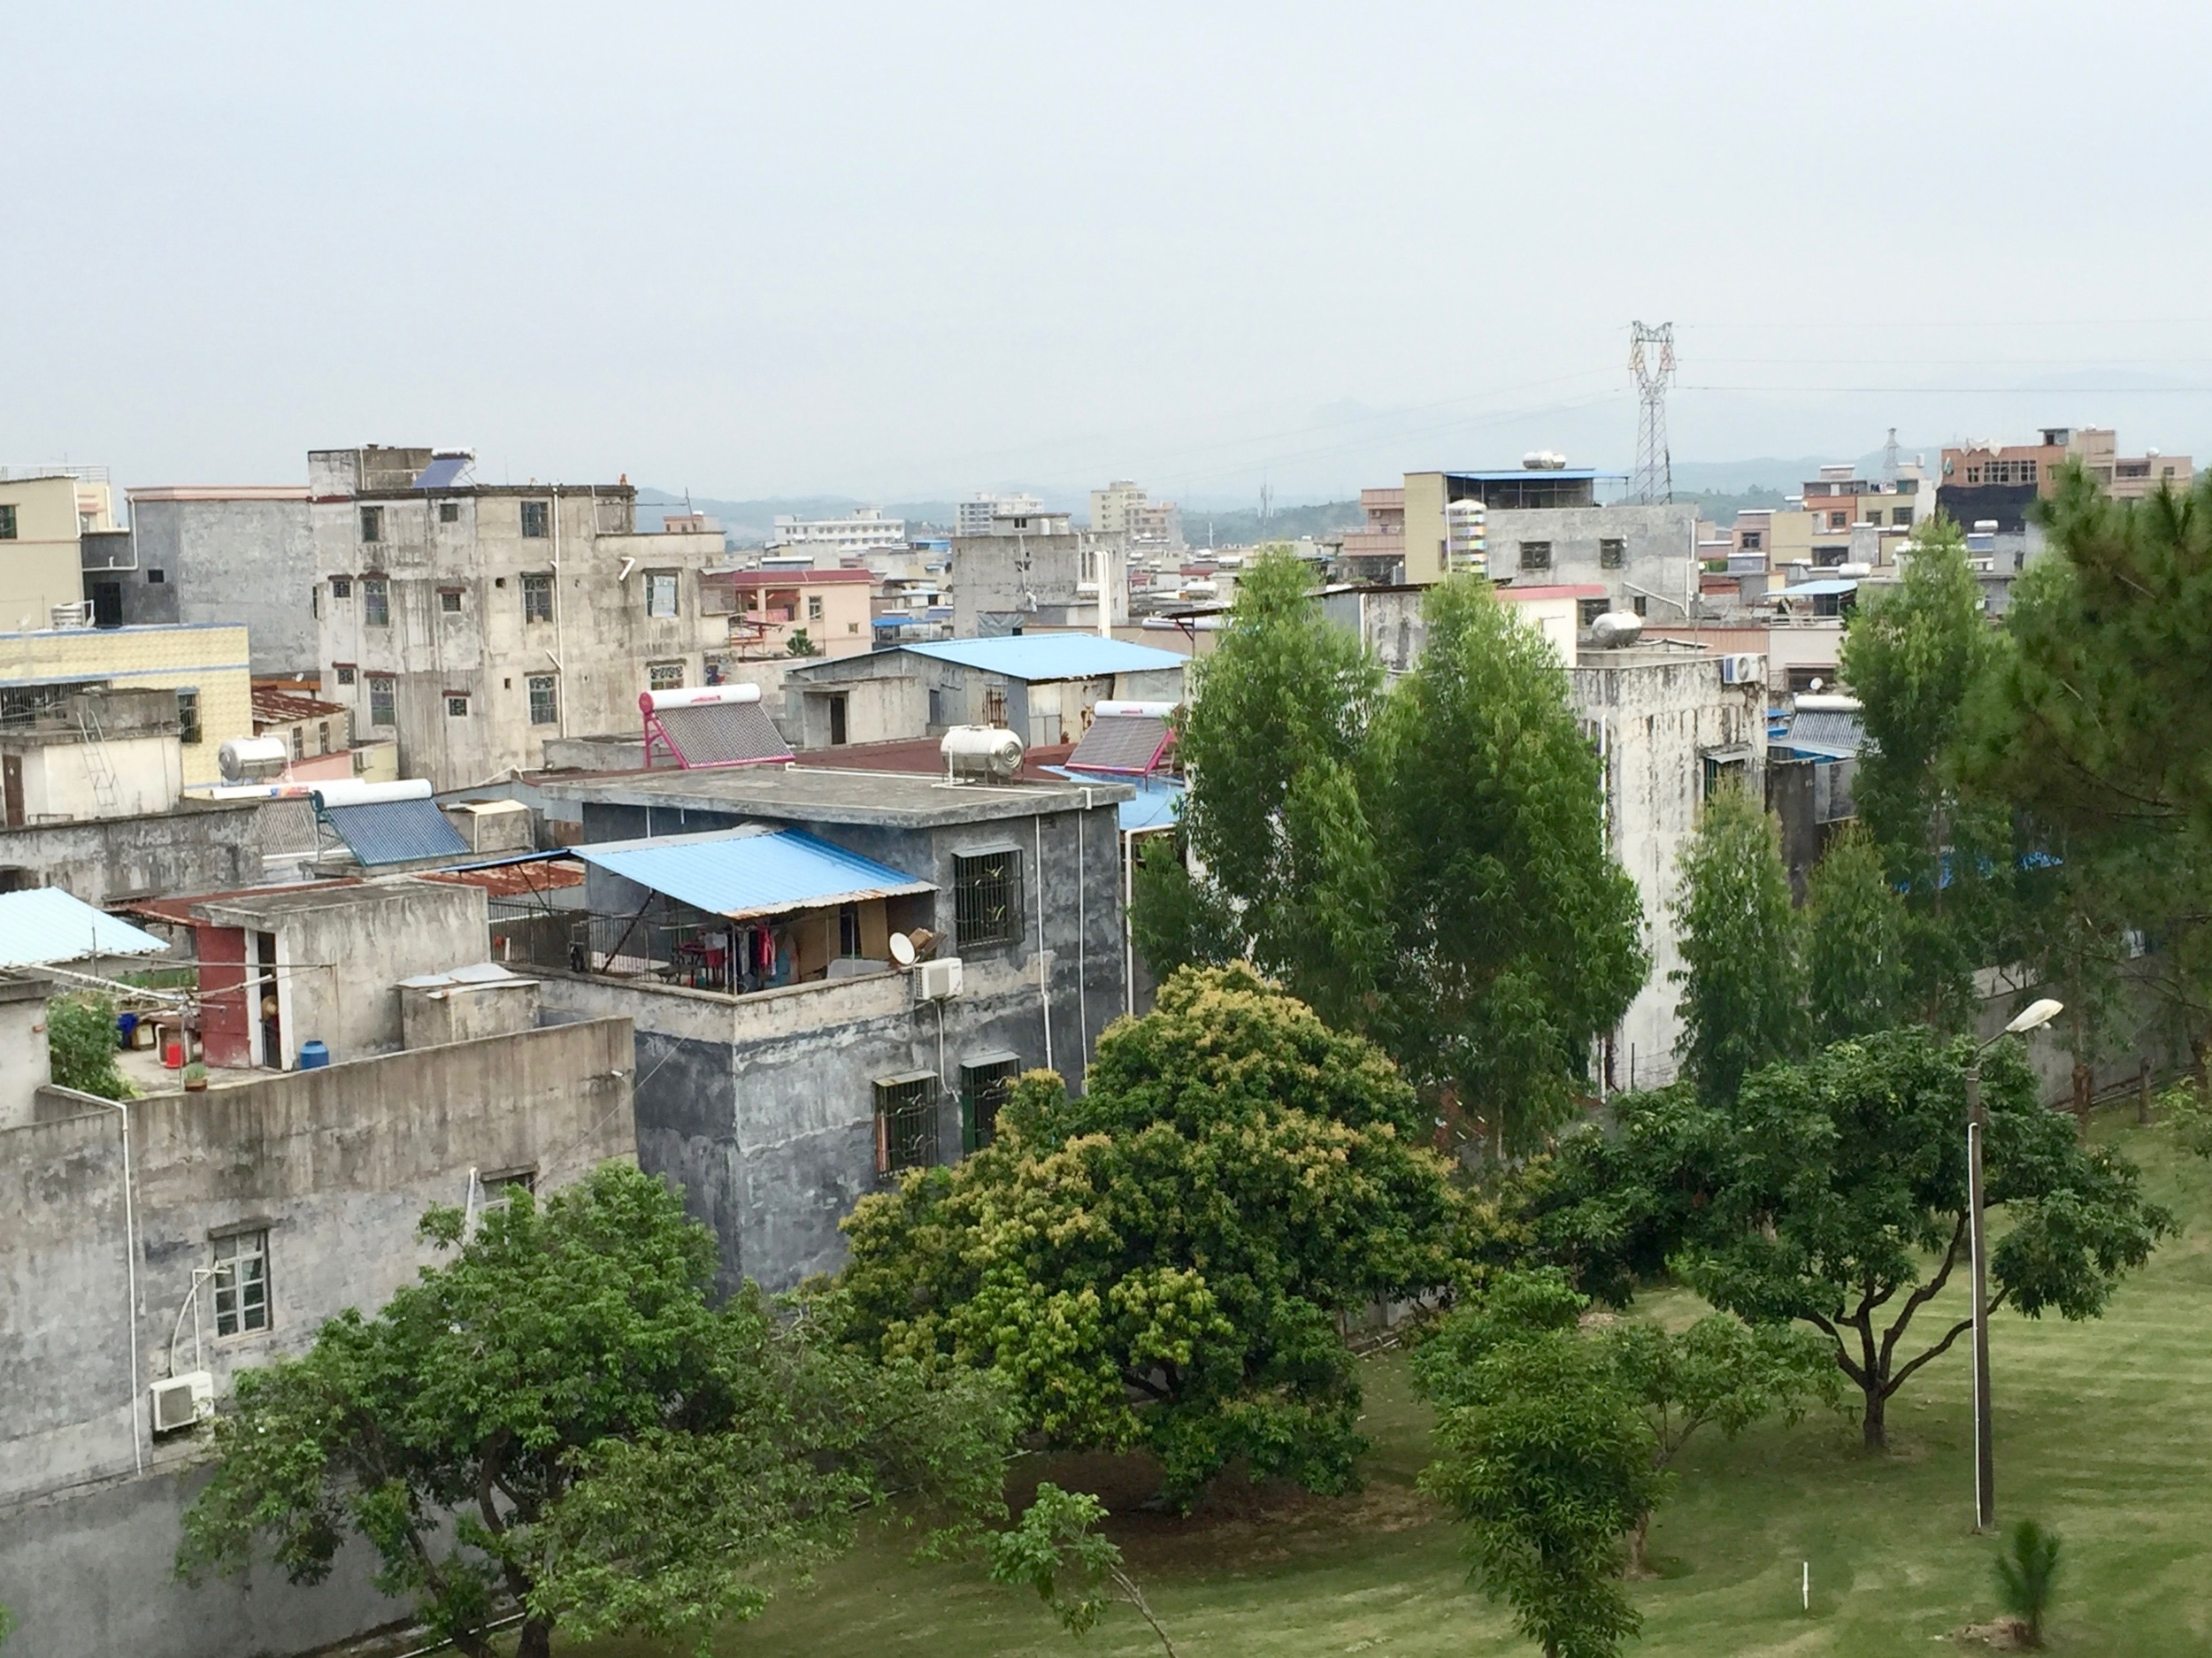 View of Pingshan from the upper balcony of the dorms.